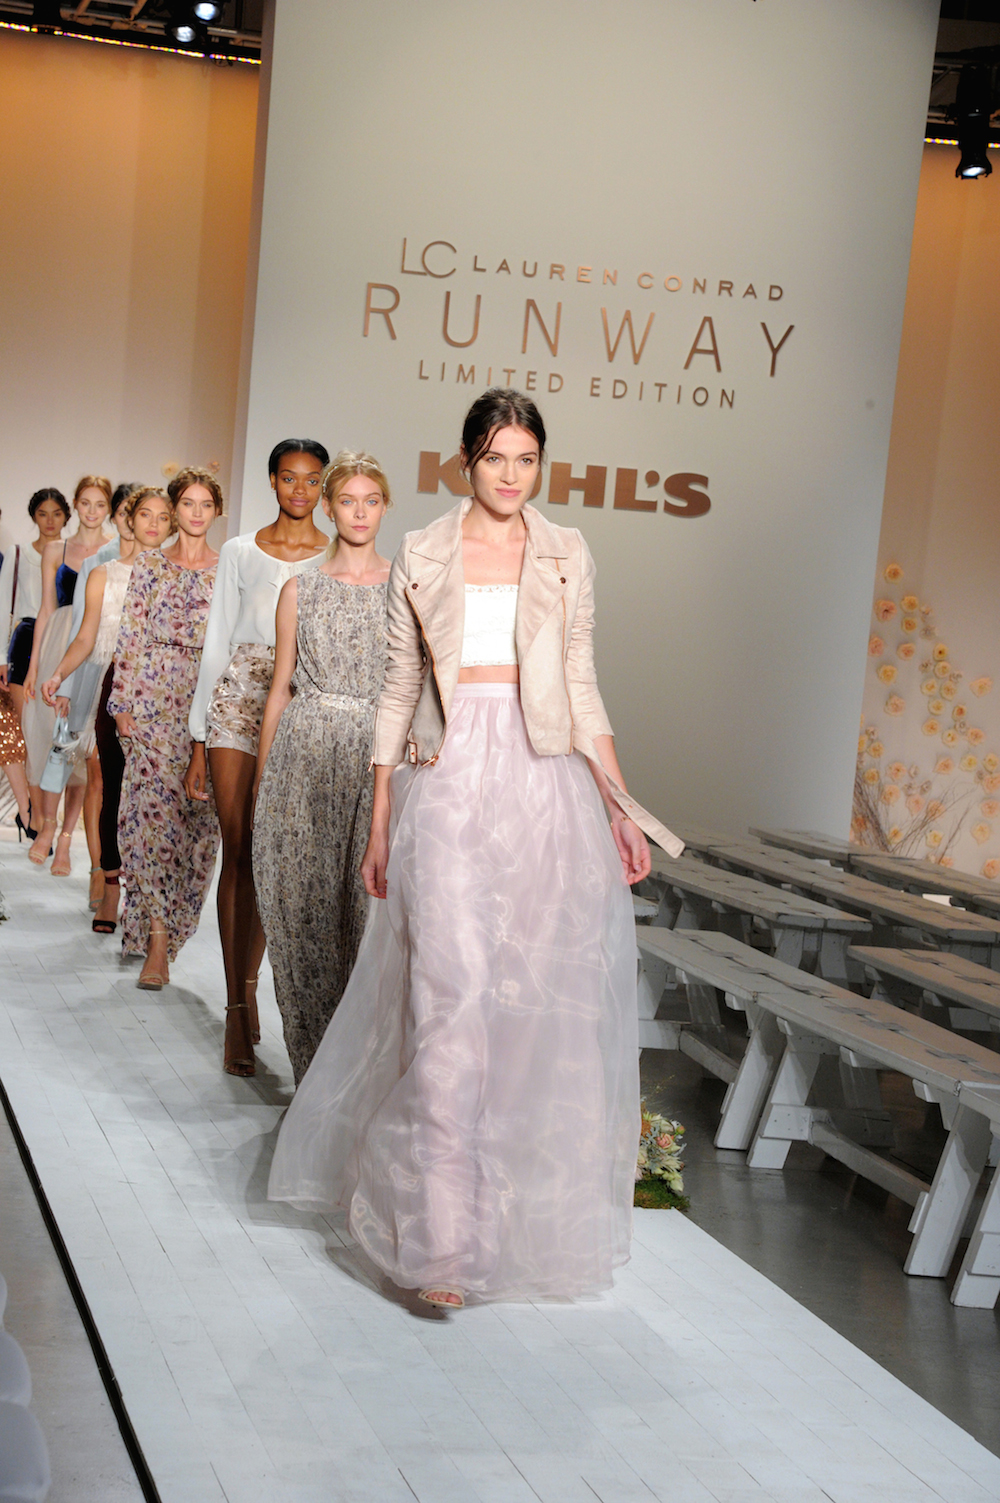 77a09af6ef58df LC Lauren Conrad Runway Collection for Kohl s Fashion Week Show ...